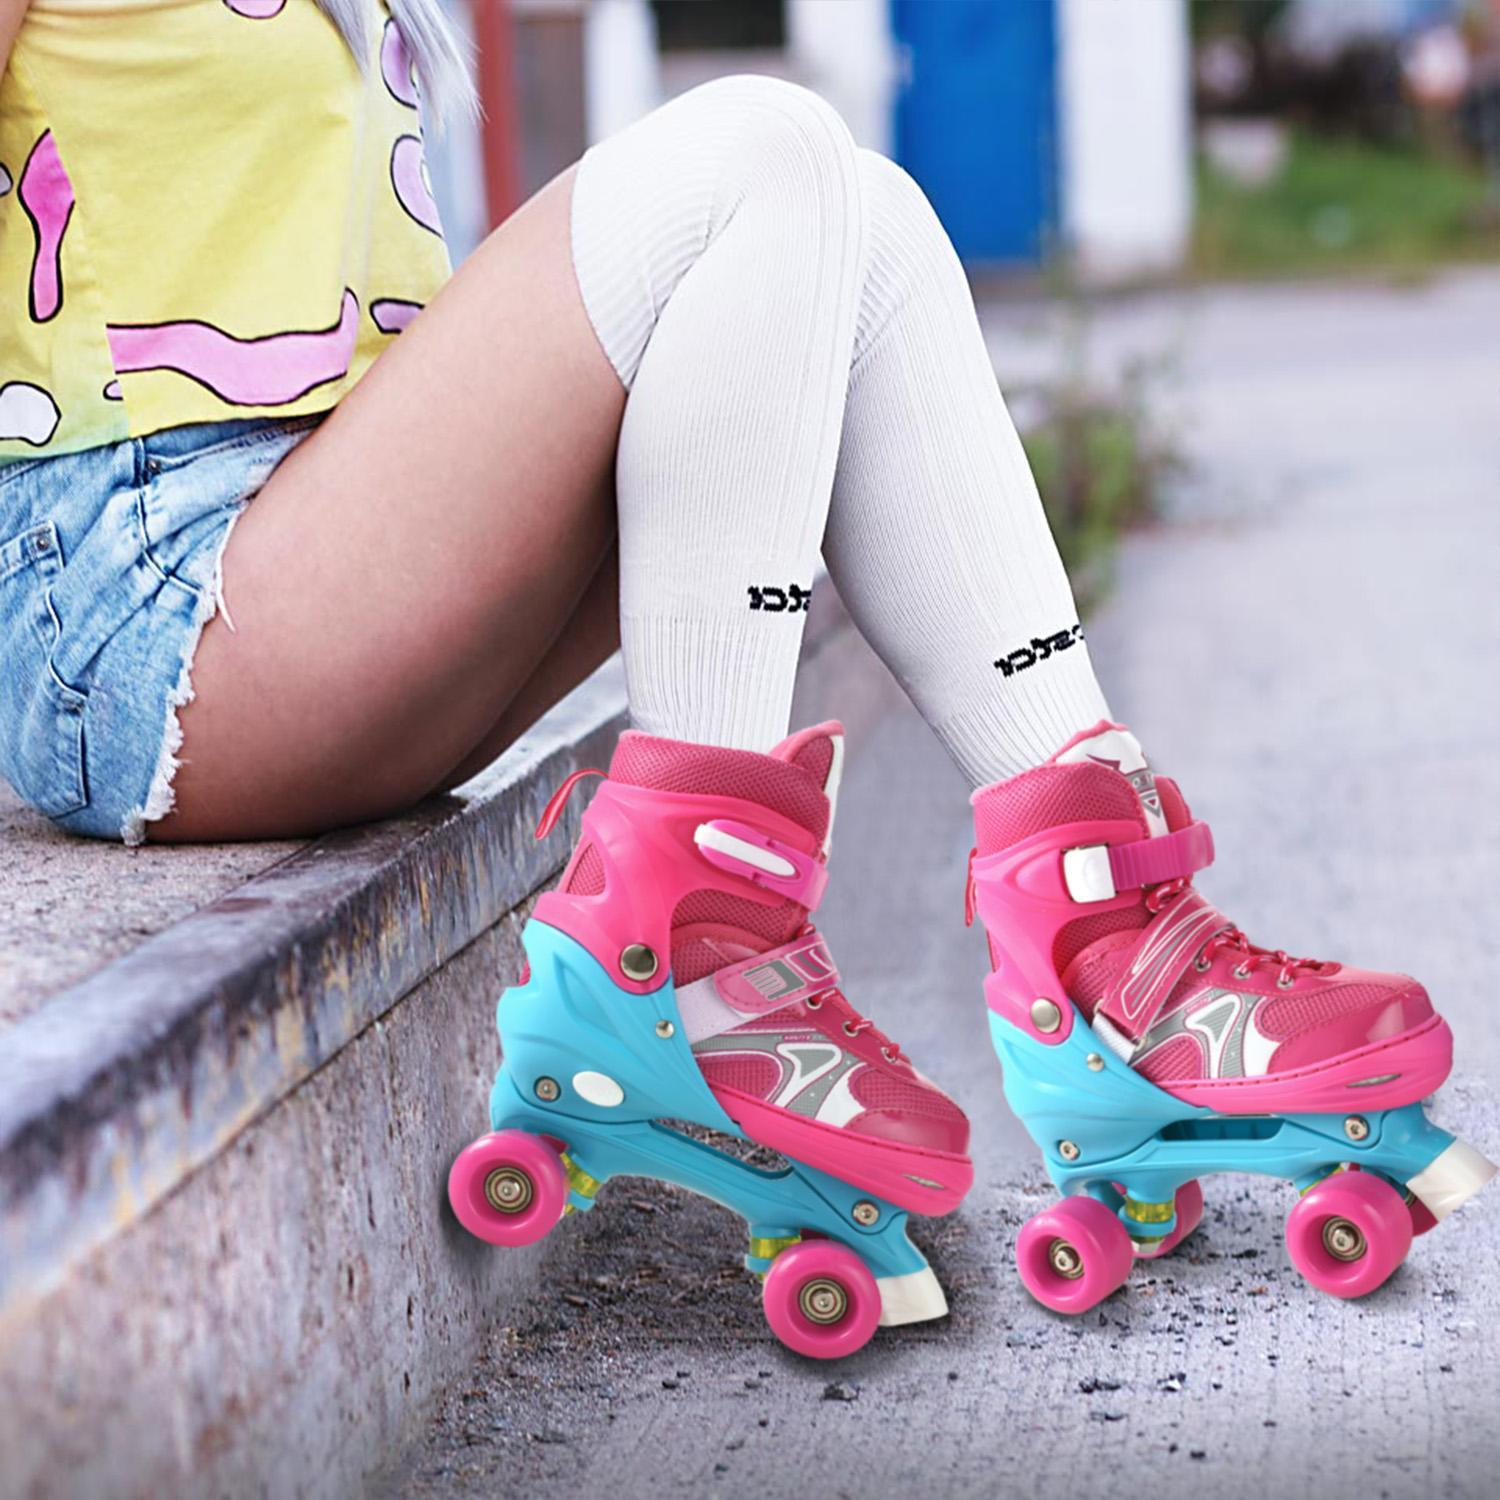 Unisex Fancy Double-row Roller Skating Shoes Straight Adult Inline Skates Professional Skates Shoes